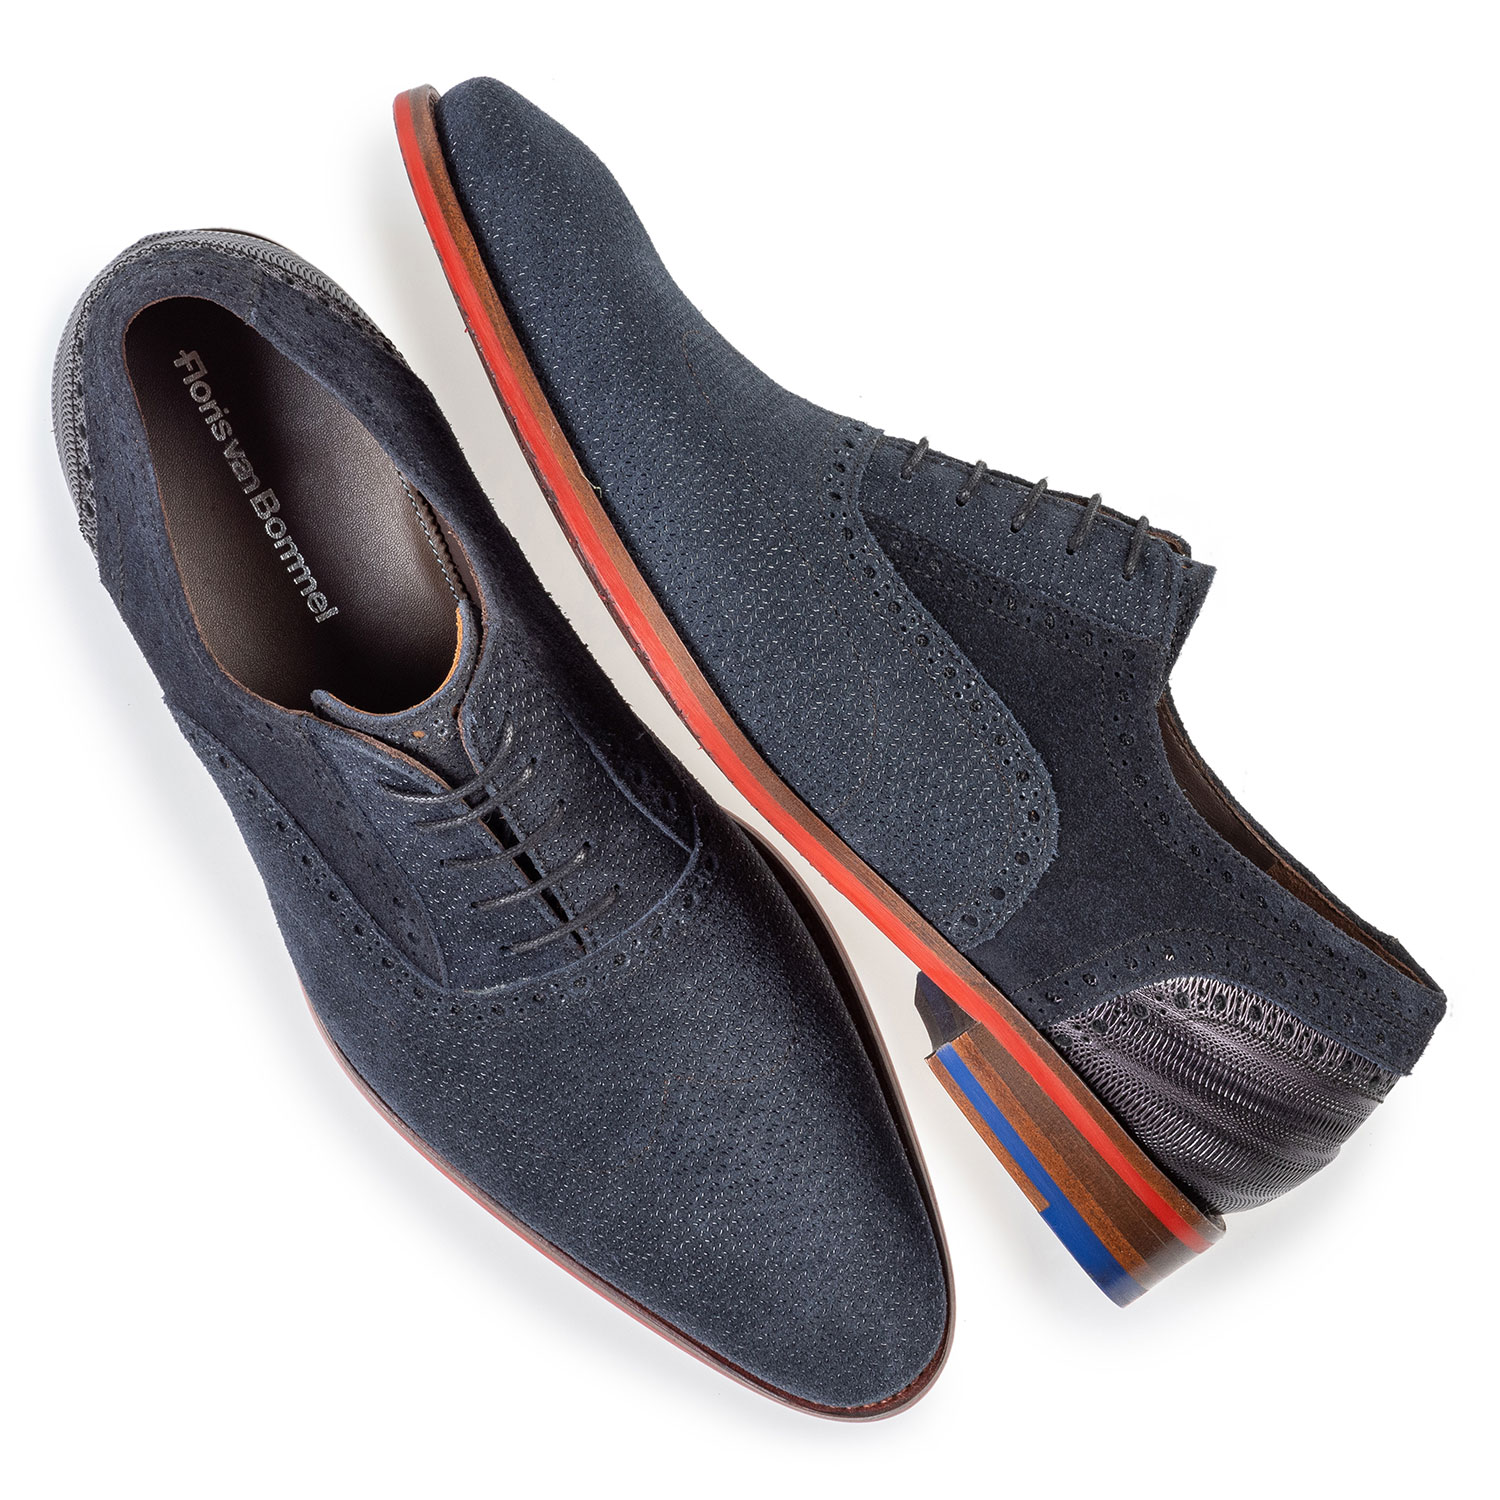 19109/06 - Lace shoe dark blue with print